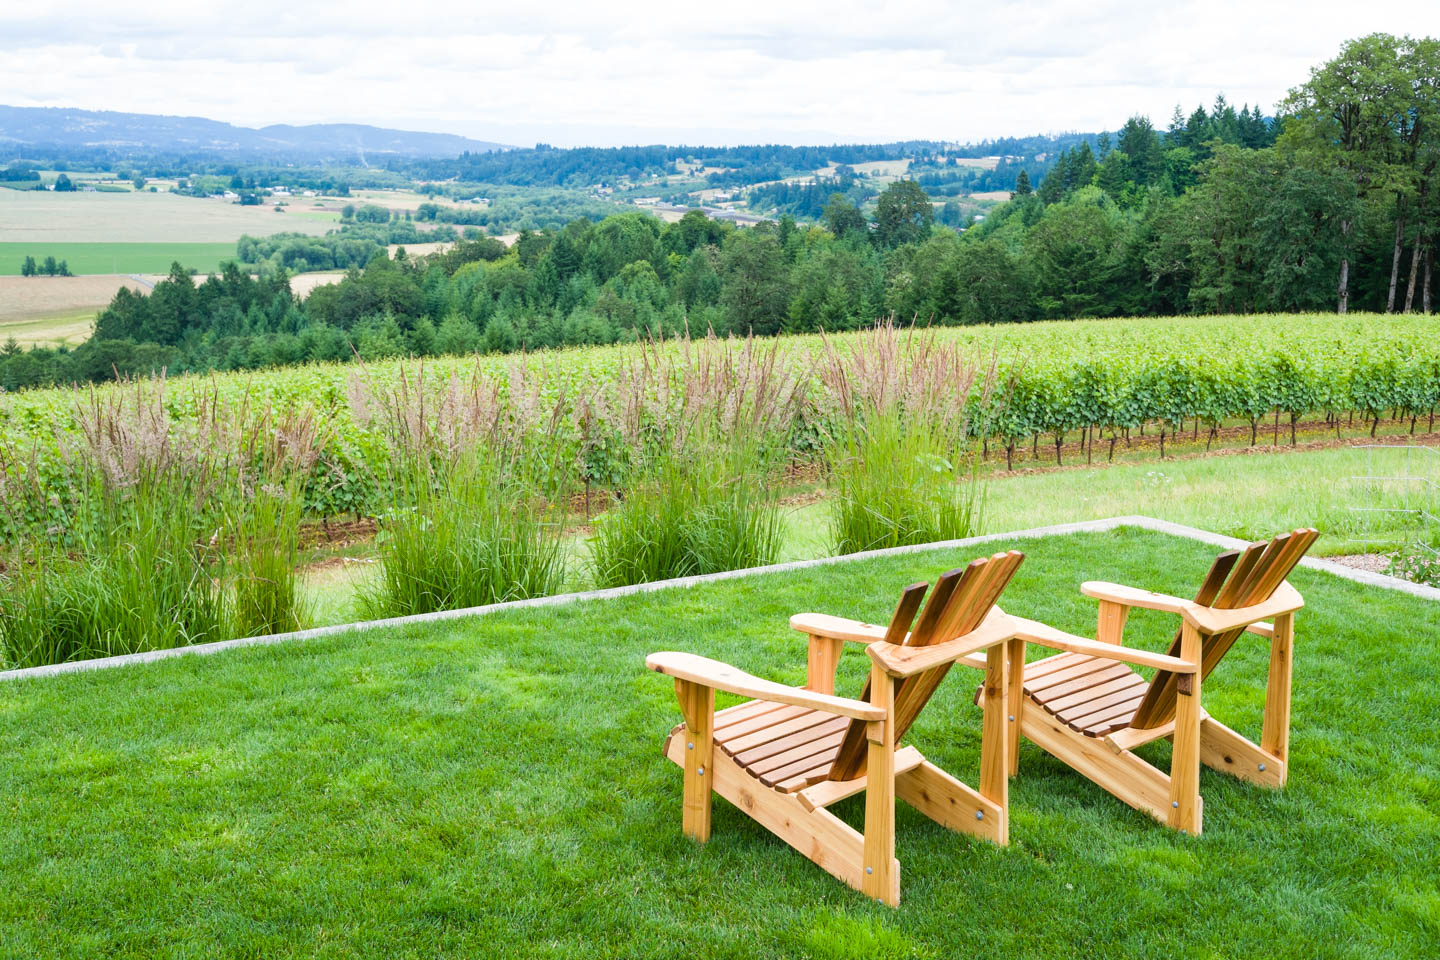 Chairs ready for the view of Oregon